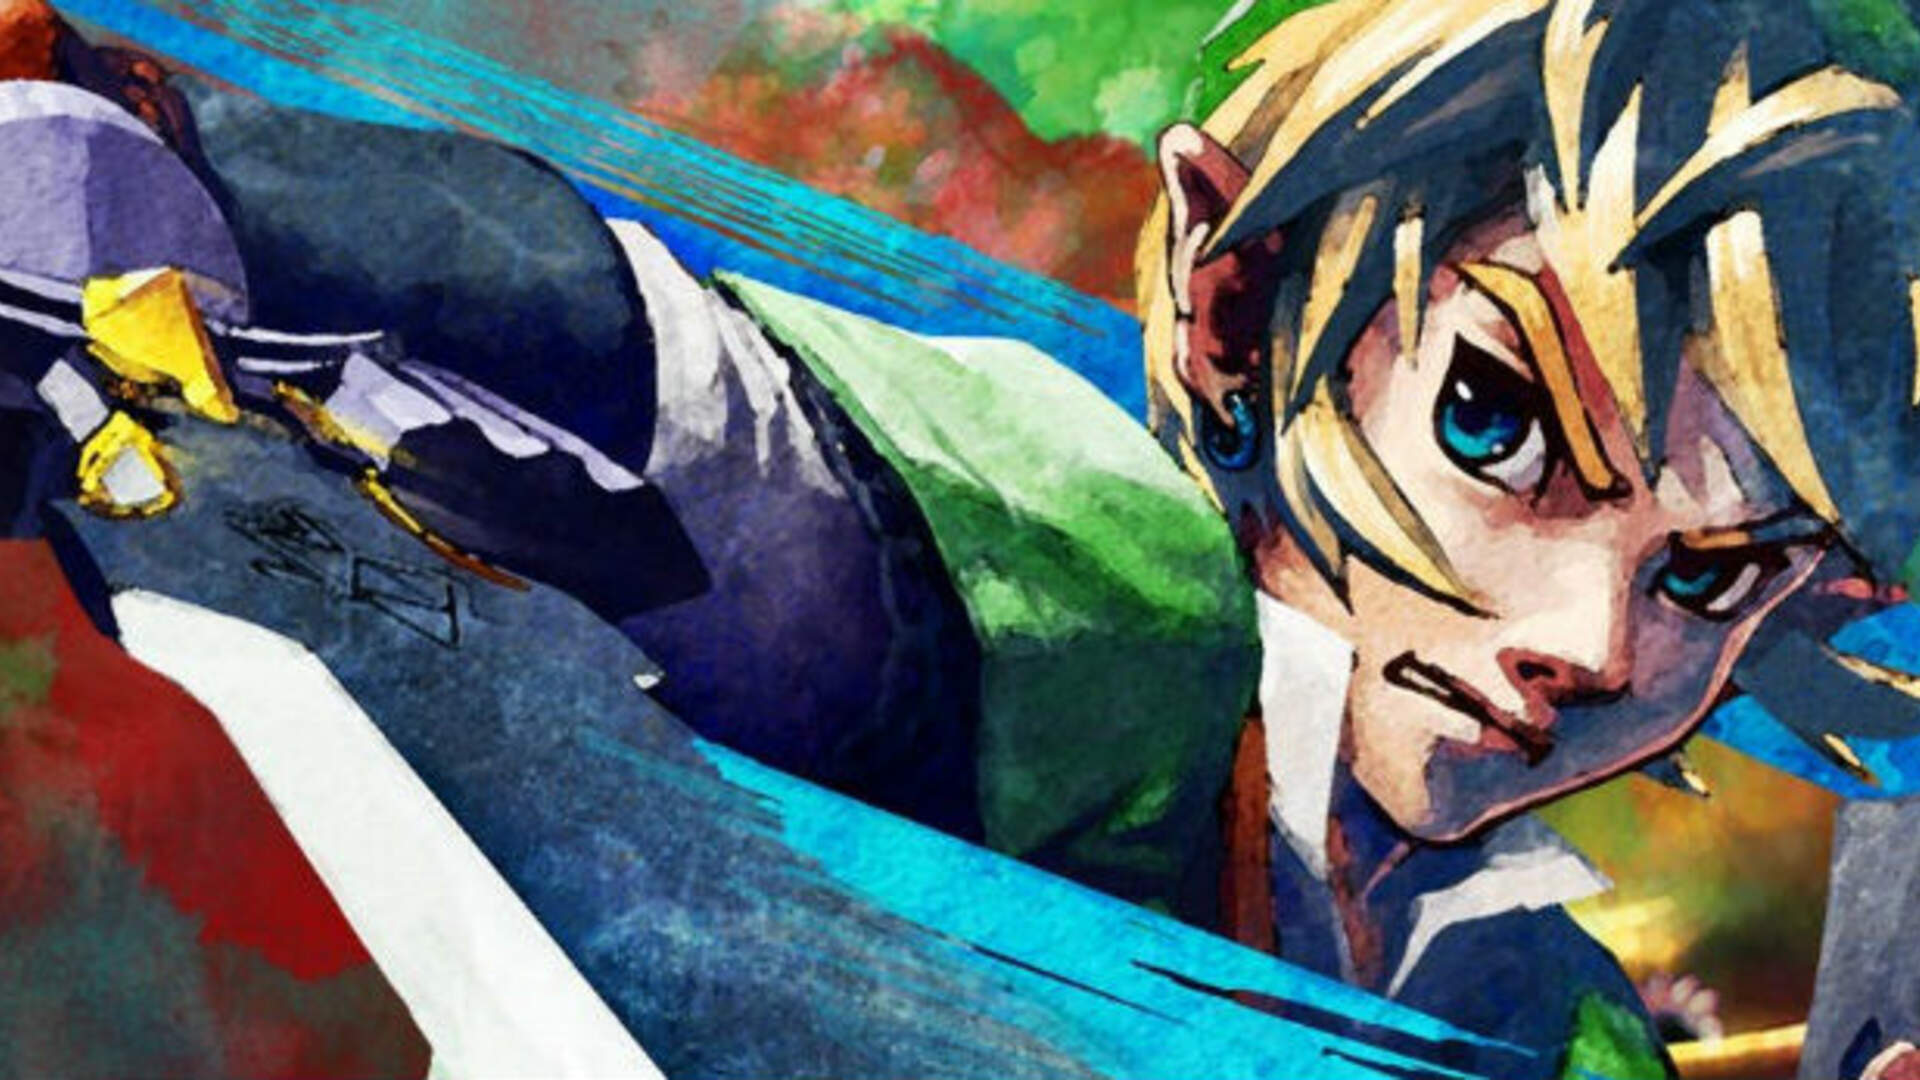 If The Legend of Zelda: Skyward Sword Comes to Switch, It Needs to Rethink a Key Feature